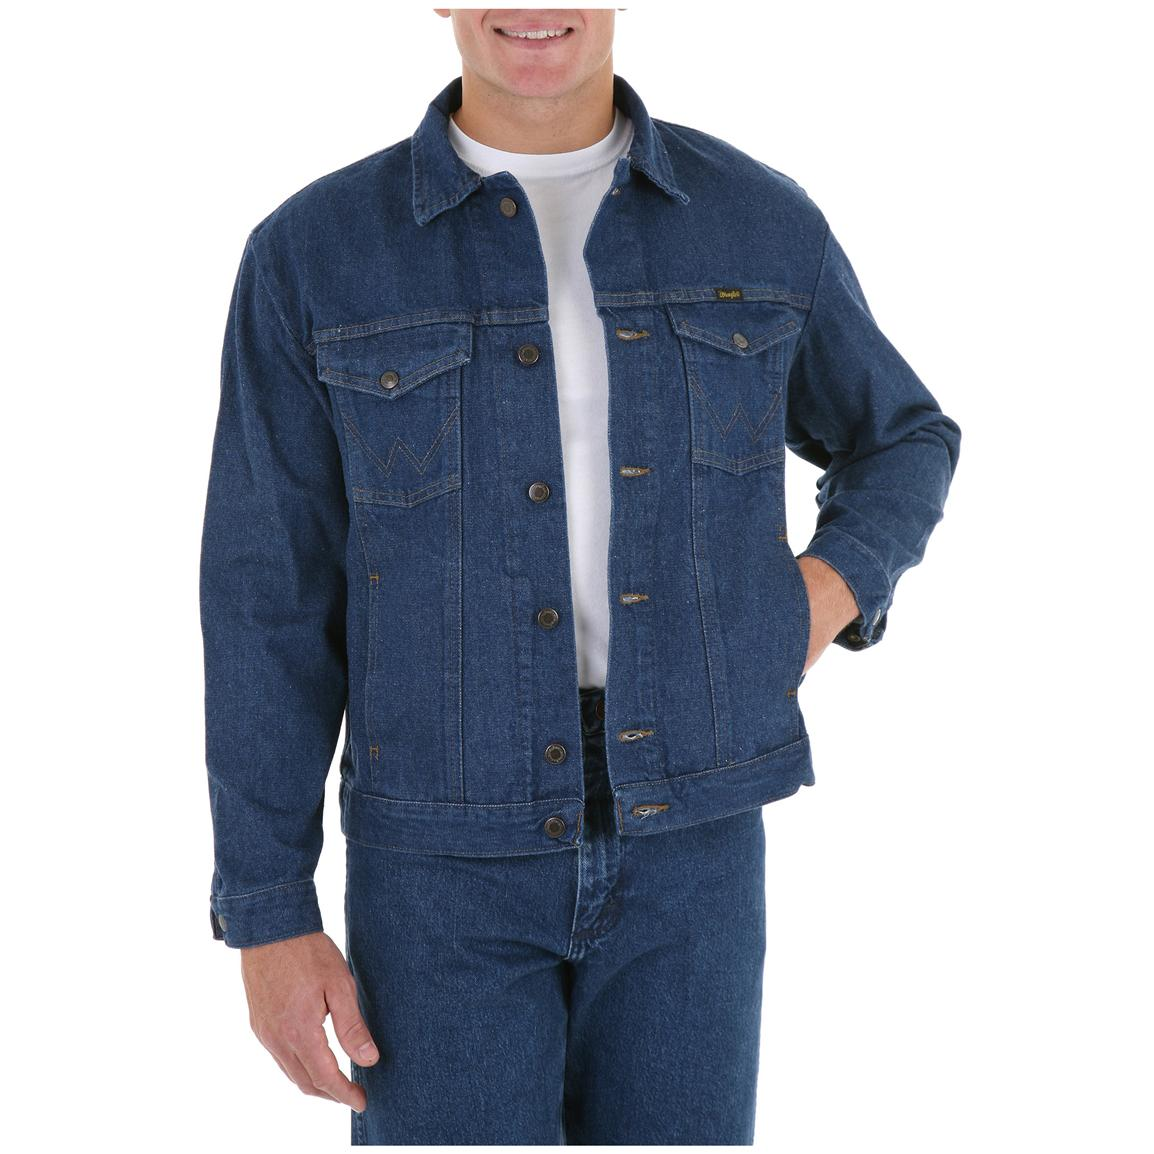 Wrangler Rugged Wear Unlined Denim Jacket